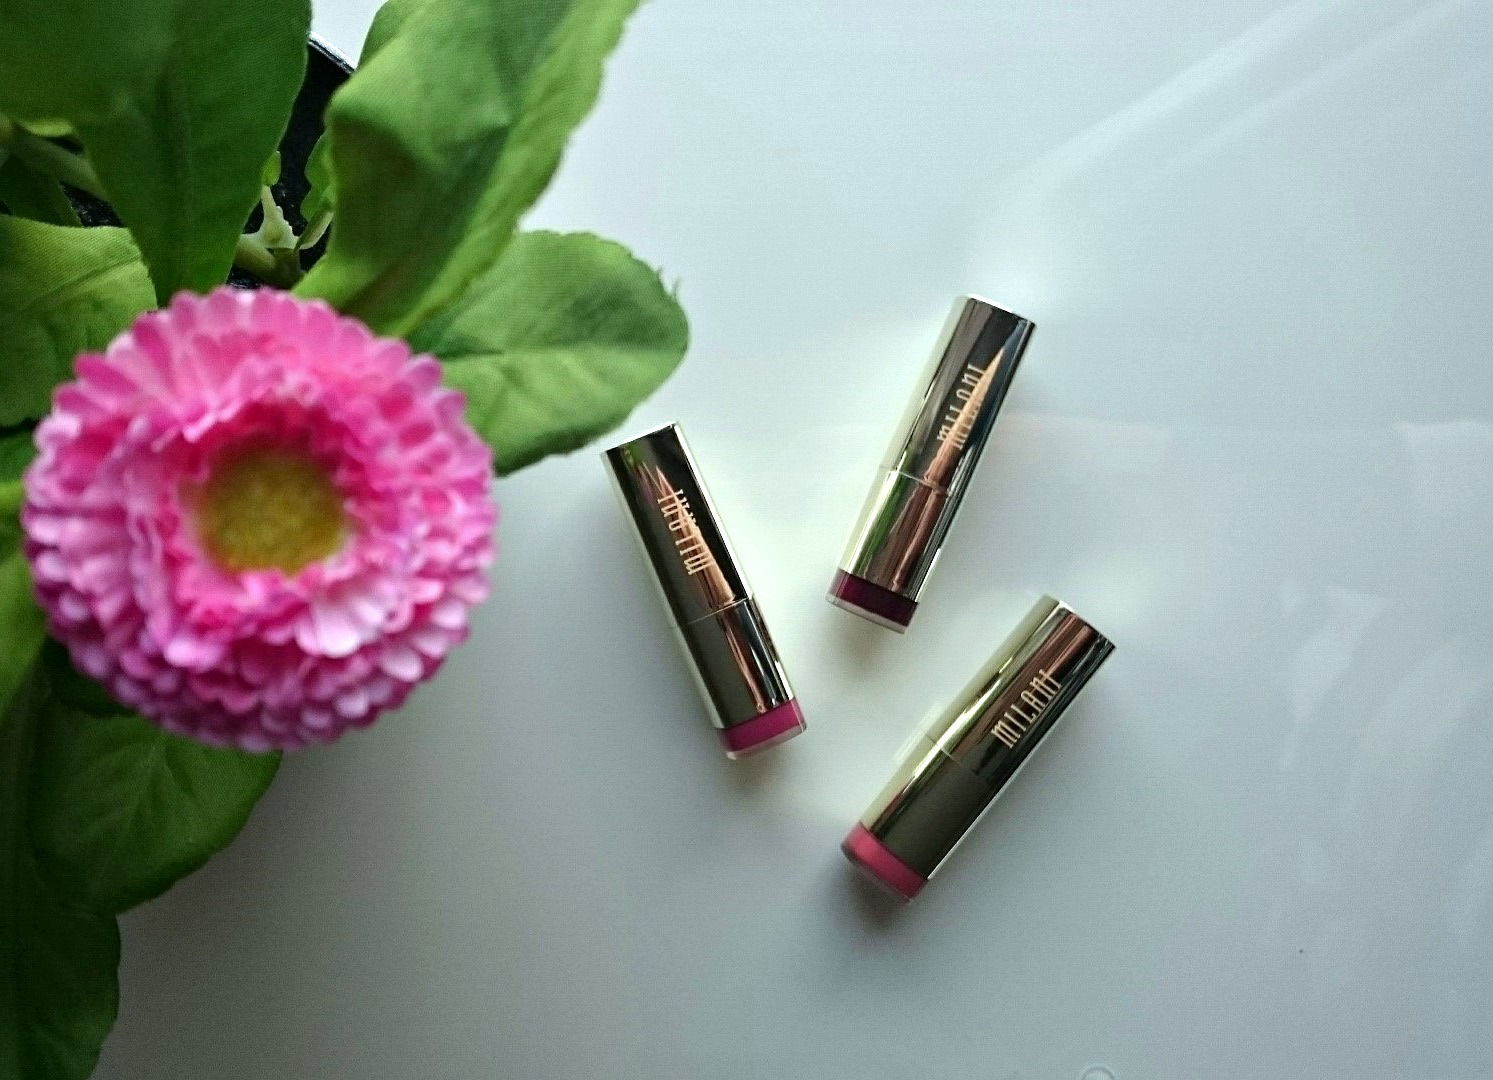 Milani Colour Statement Lipstick